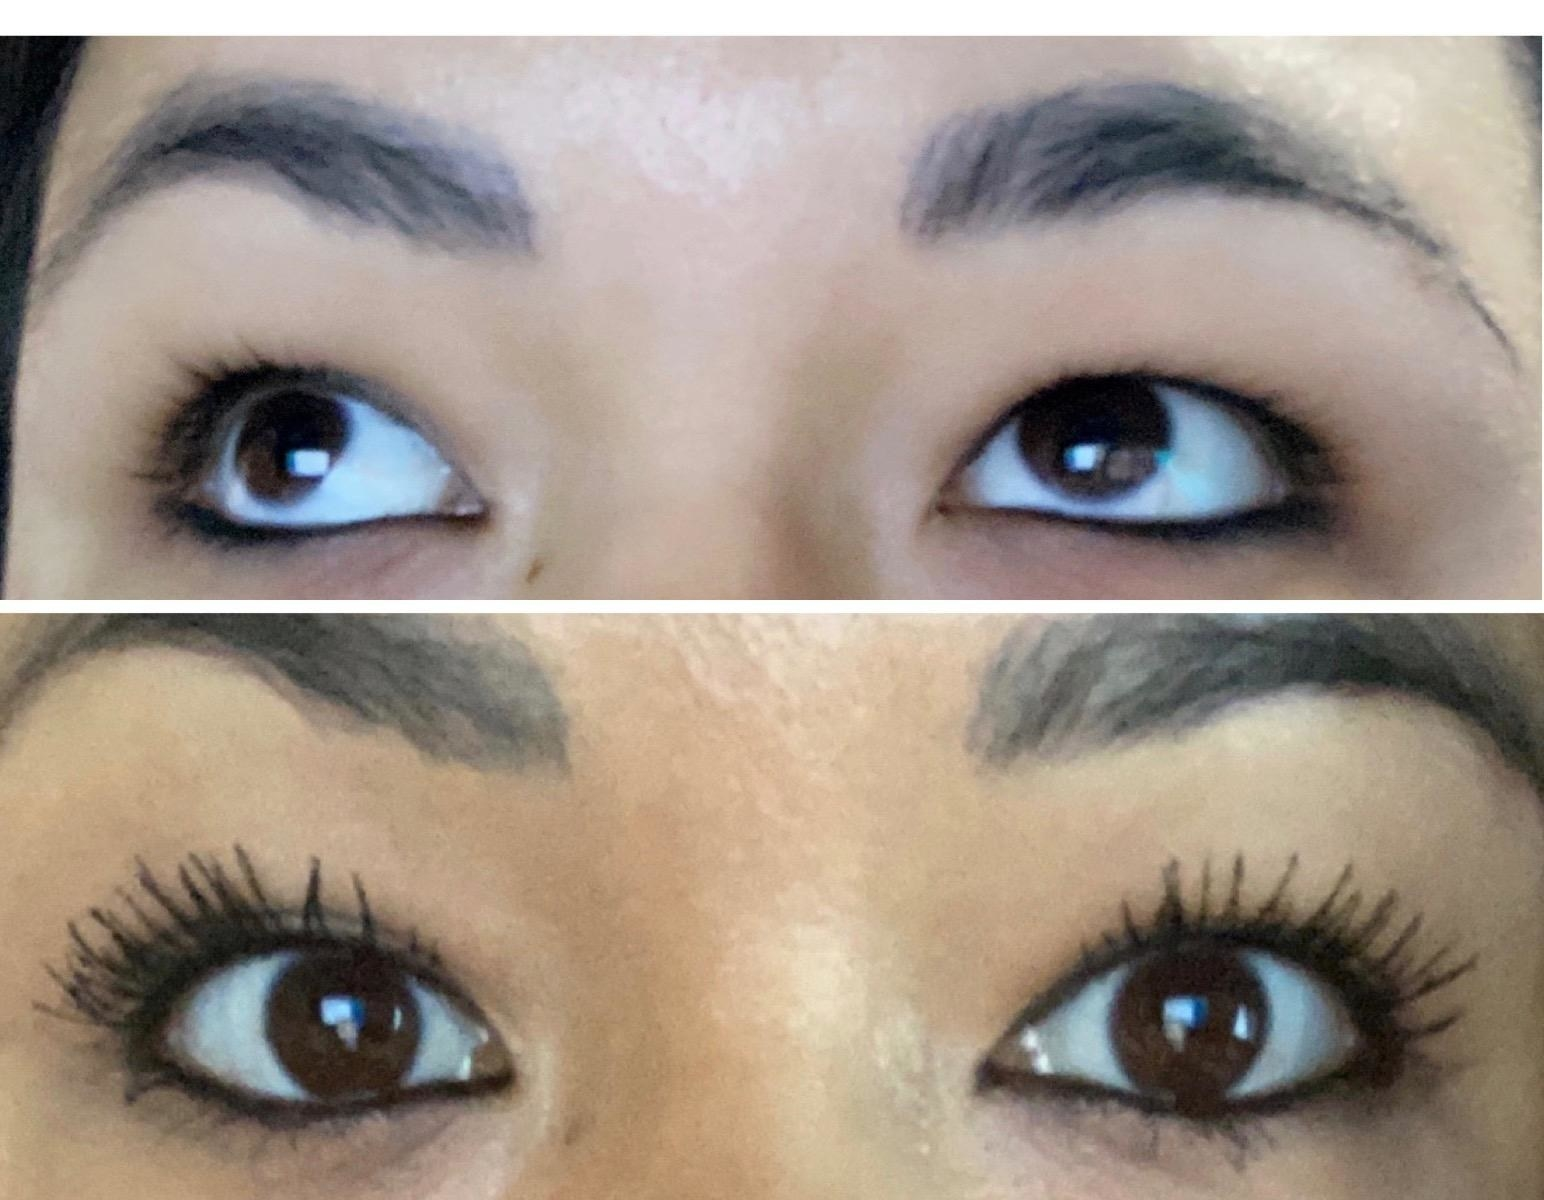 reviewer's before and after of their lashes having much more length and volume after using the mascara